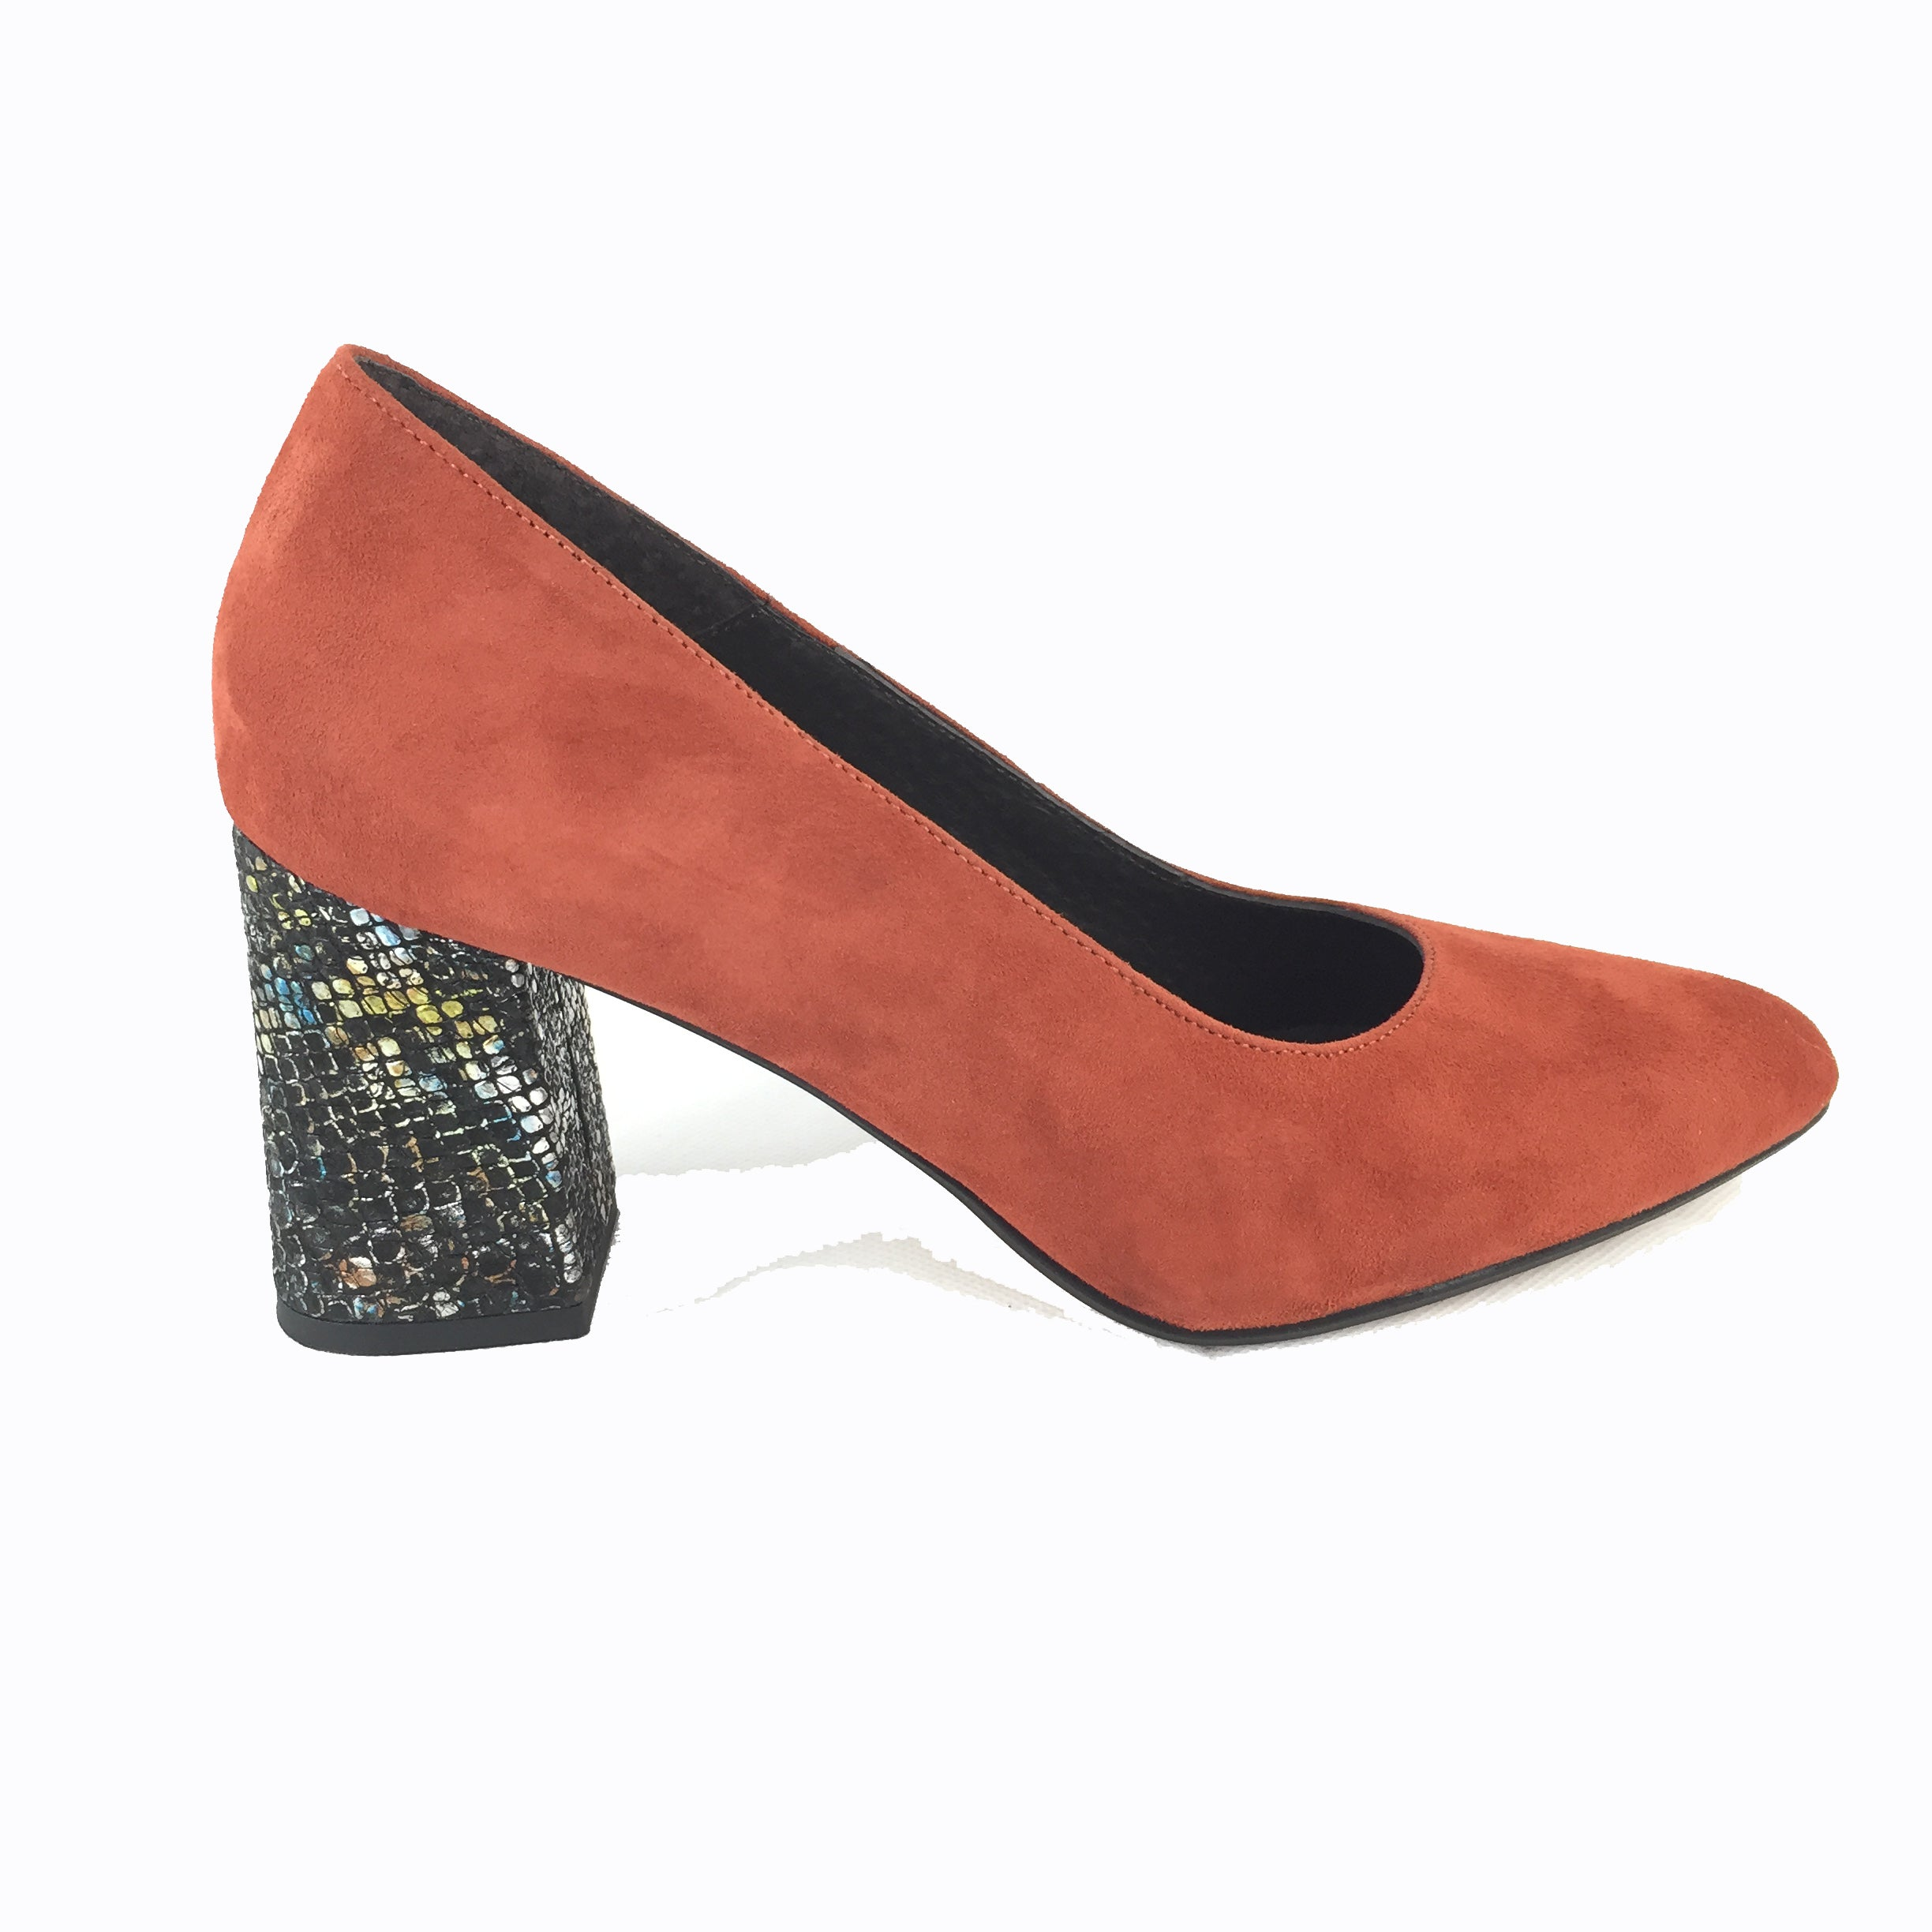 Cherrypic burnt orange suede block heel court shoe. Mid block heel with black and subtle rainbow coloured snakeskin design. Rounded toe.